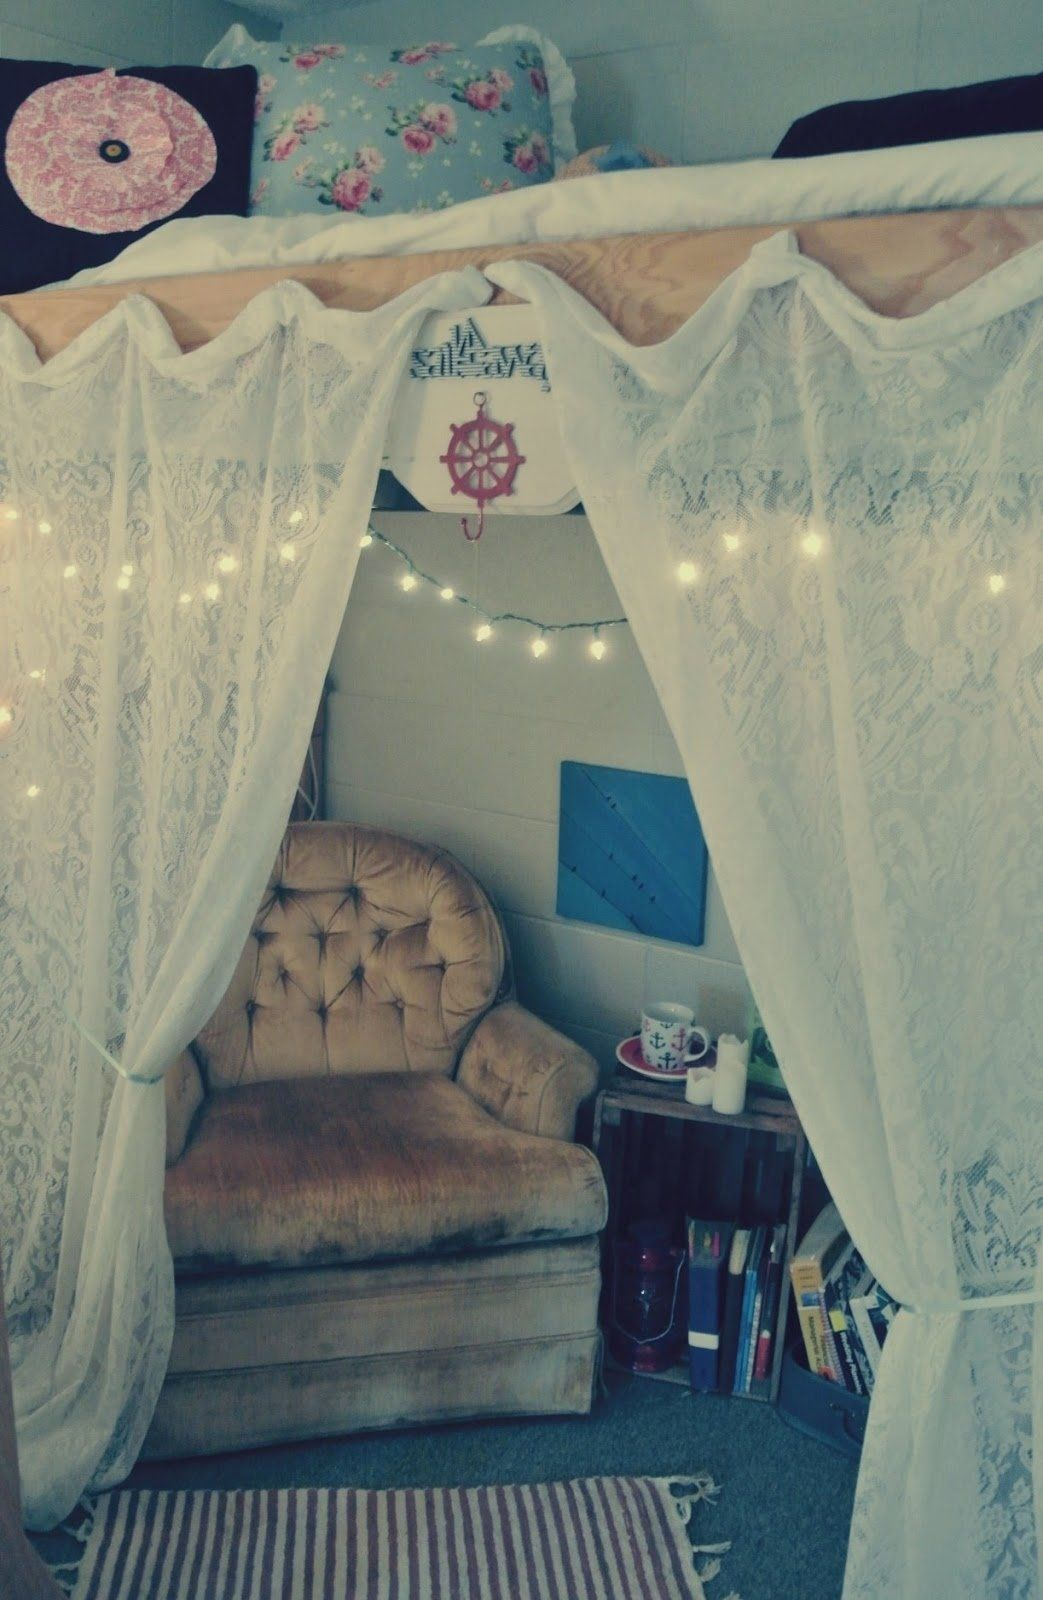 College loft bed ideas  Dorm Roomu Curtains cute you could loft your bed and put these